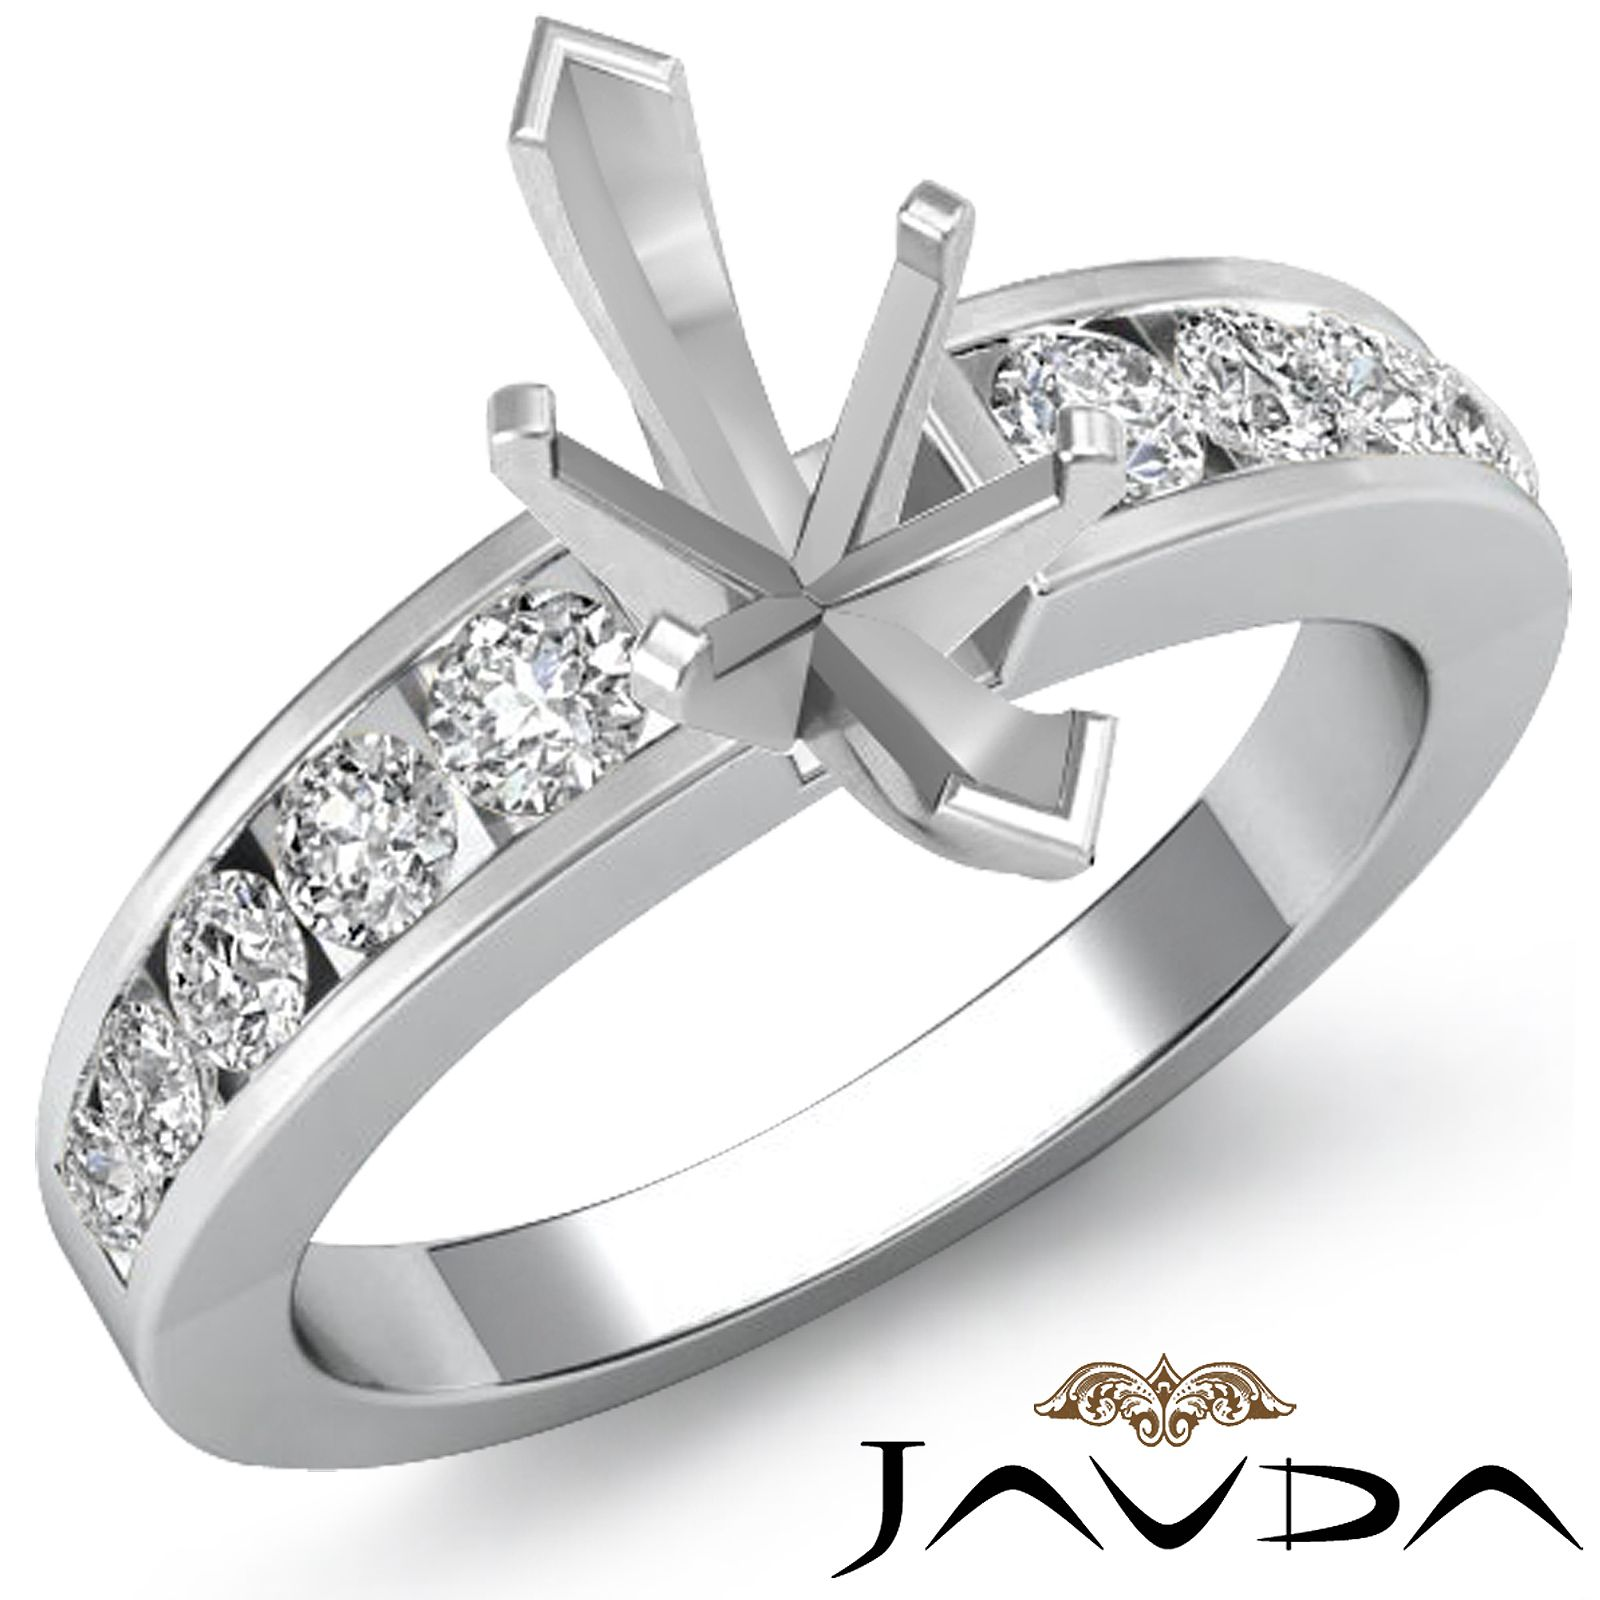 channel set engagement shoulders claw diamond setting with ring centre jewellery settings